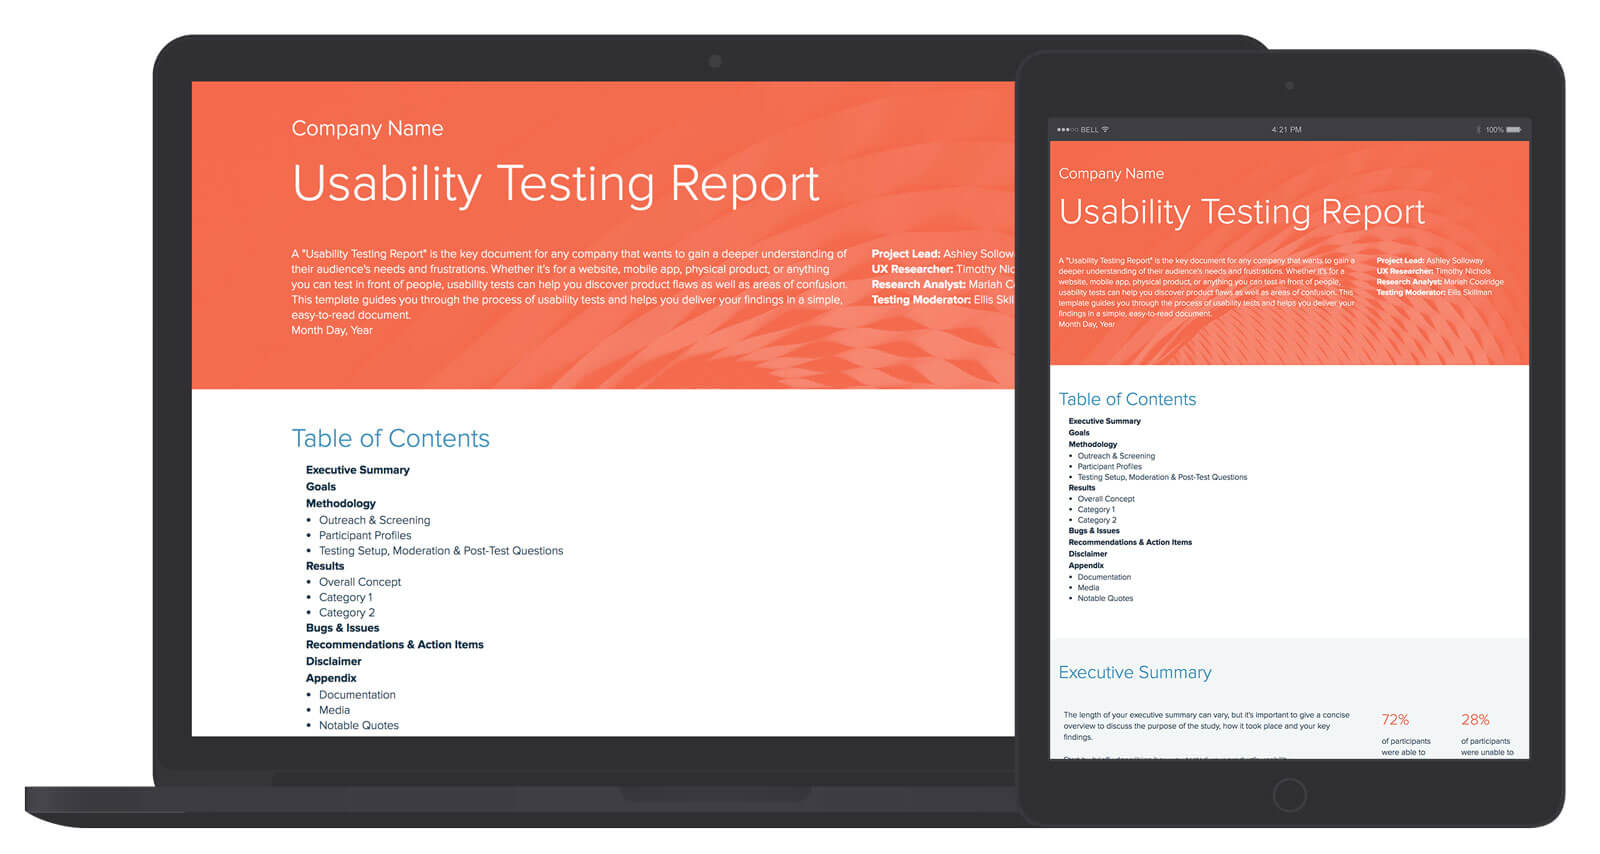 Usability Testing Report Template And Examples | Xtensio With Regard To Usability Test Report Template